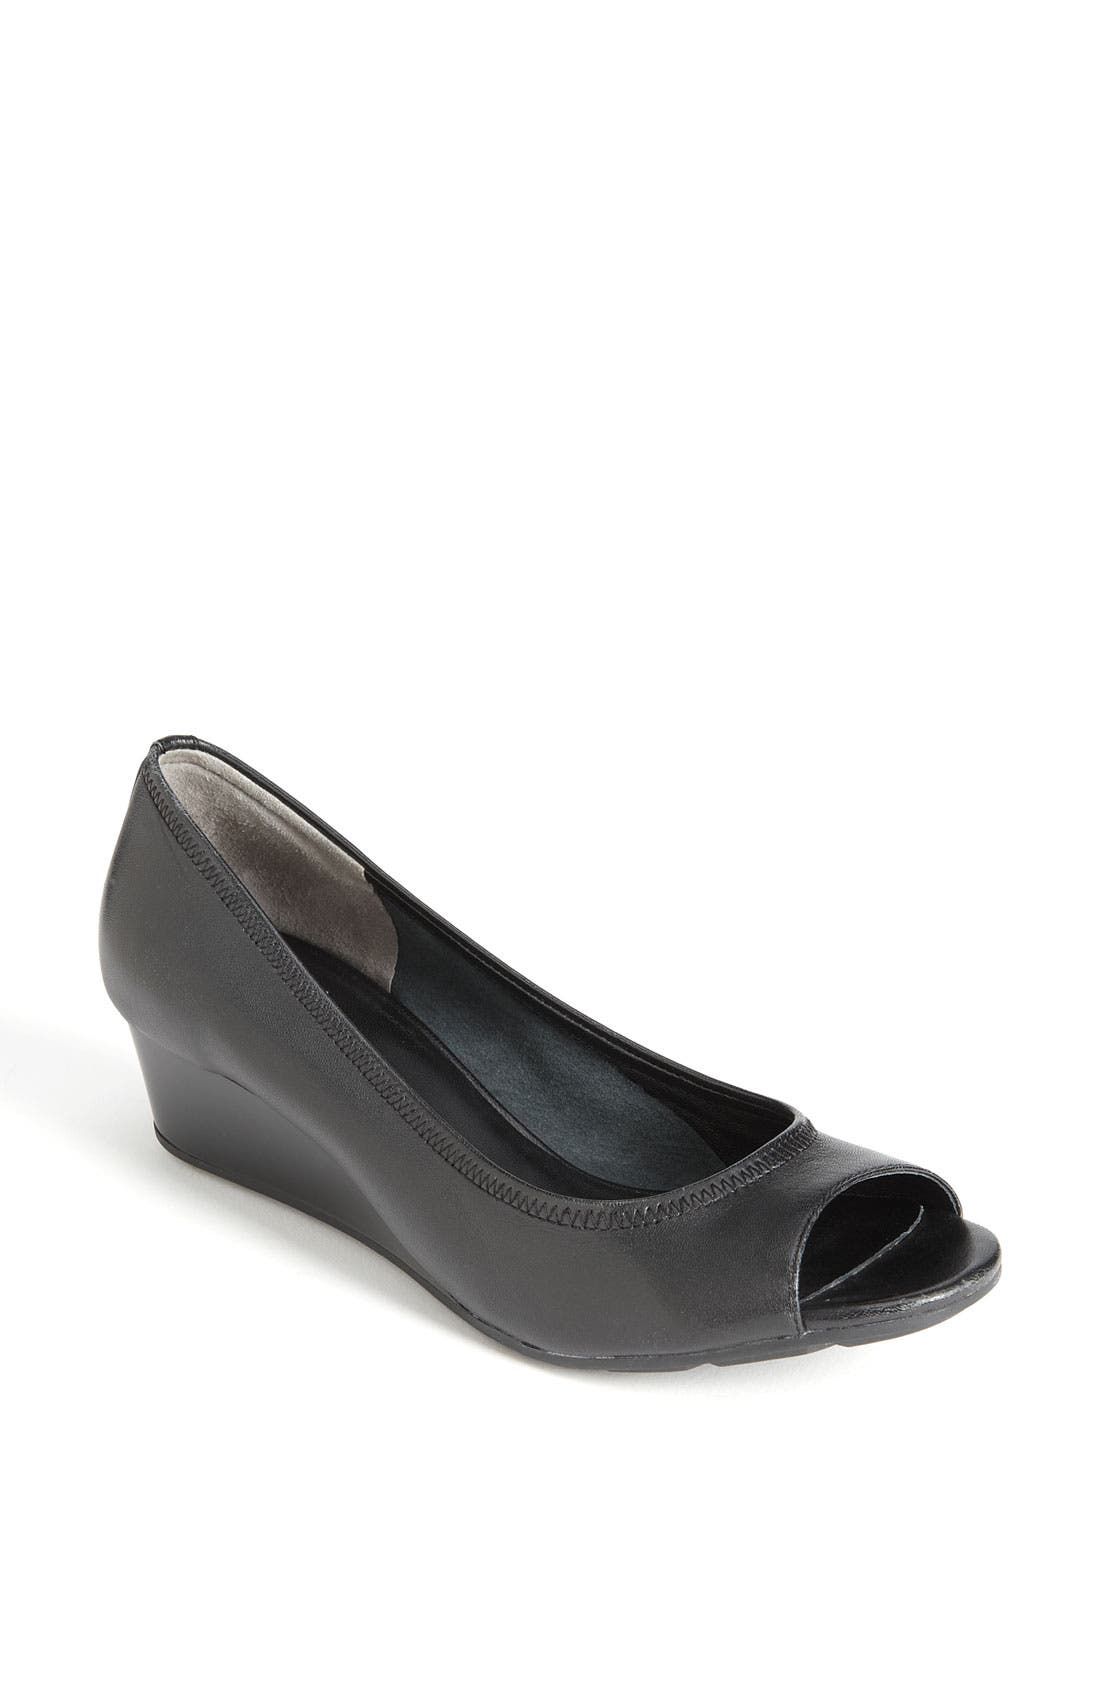 Alternate Image 1 Selected - Cole Haan 'Air Tali' Peeptoe Wedge